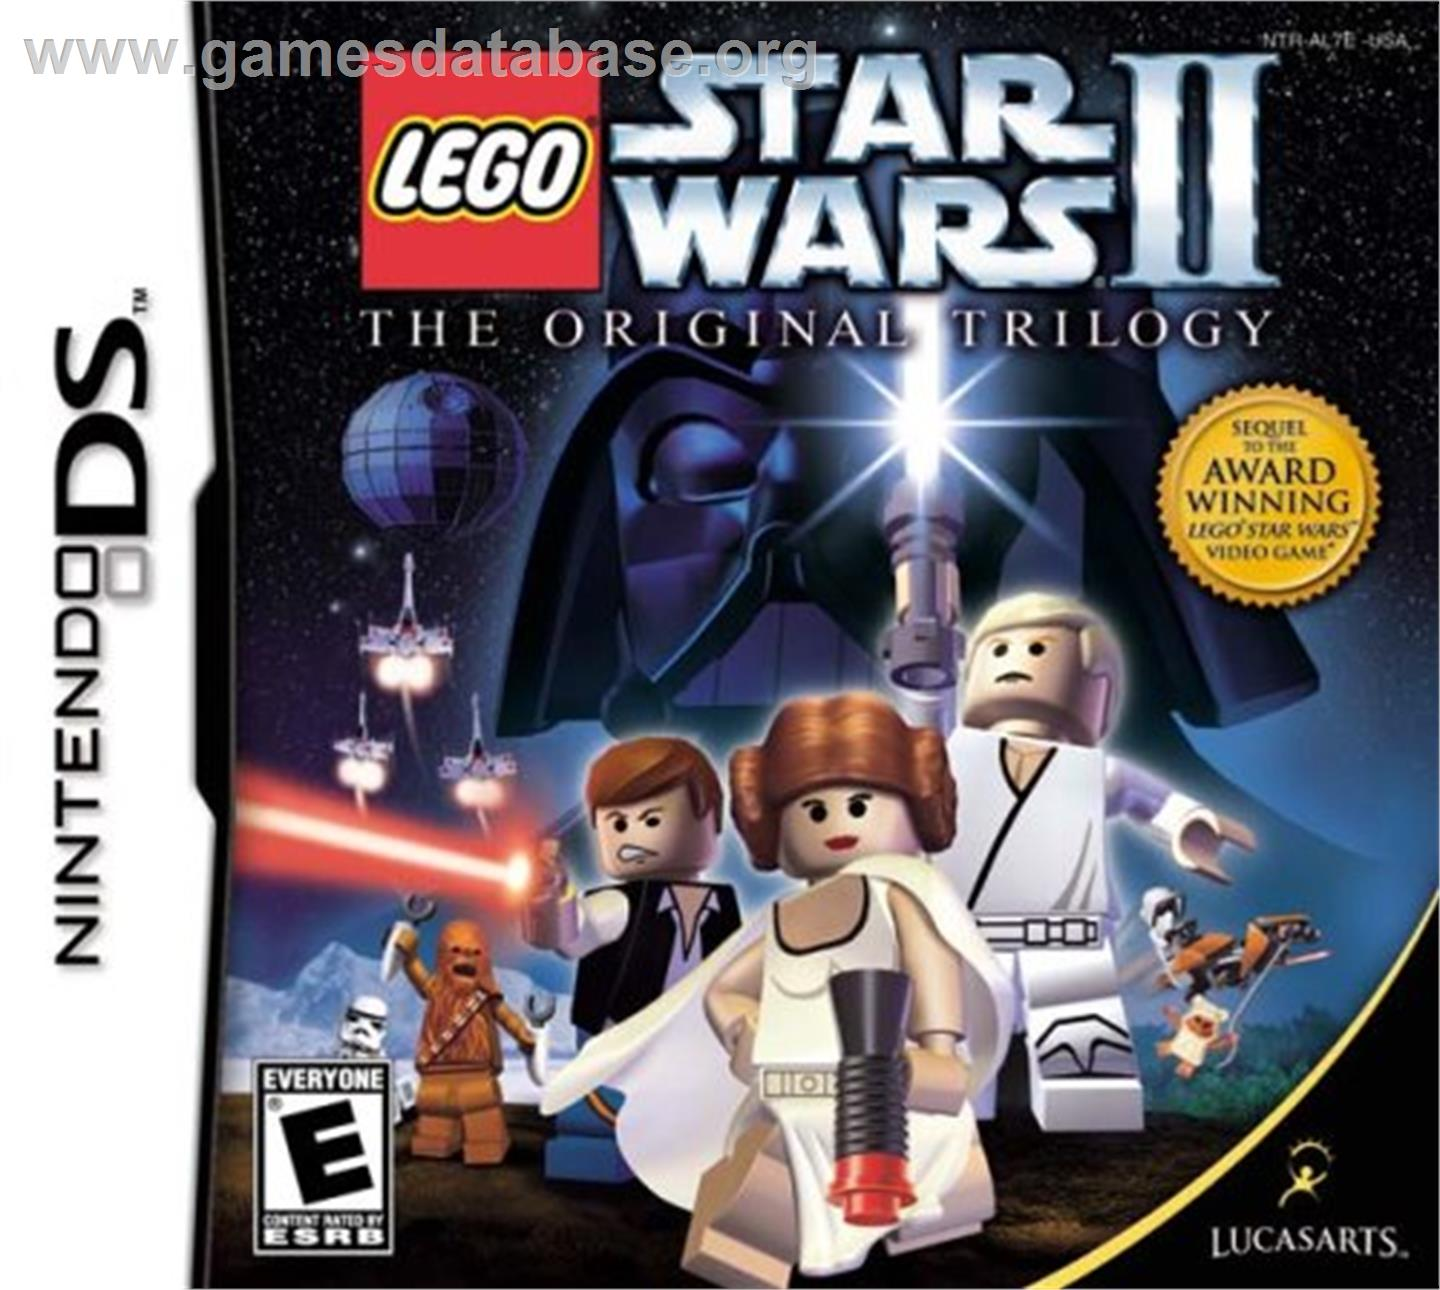 LEGO Star Wars 2: The Original Trilogy - Nintendo DS - Artwork - Box